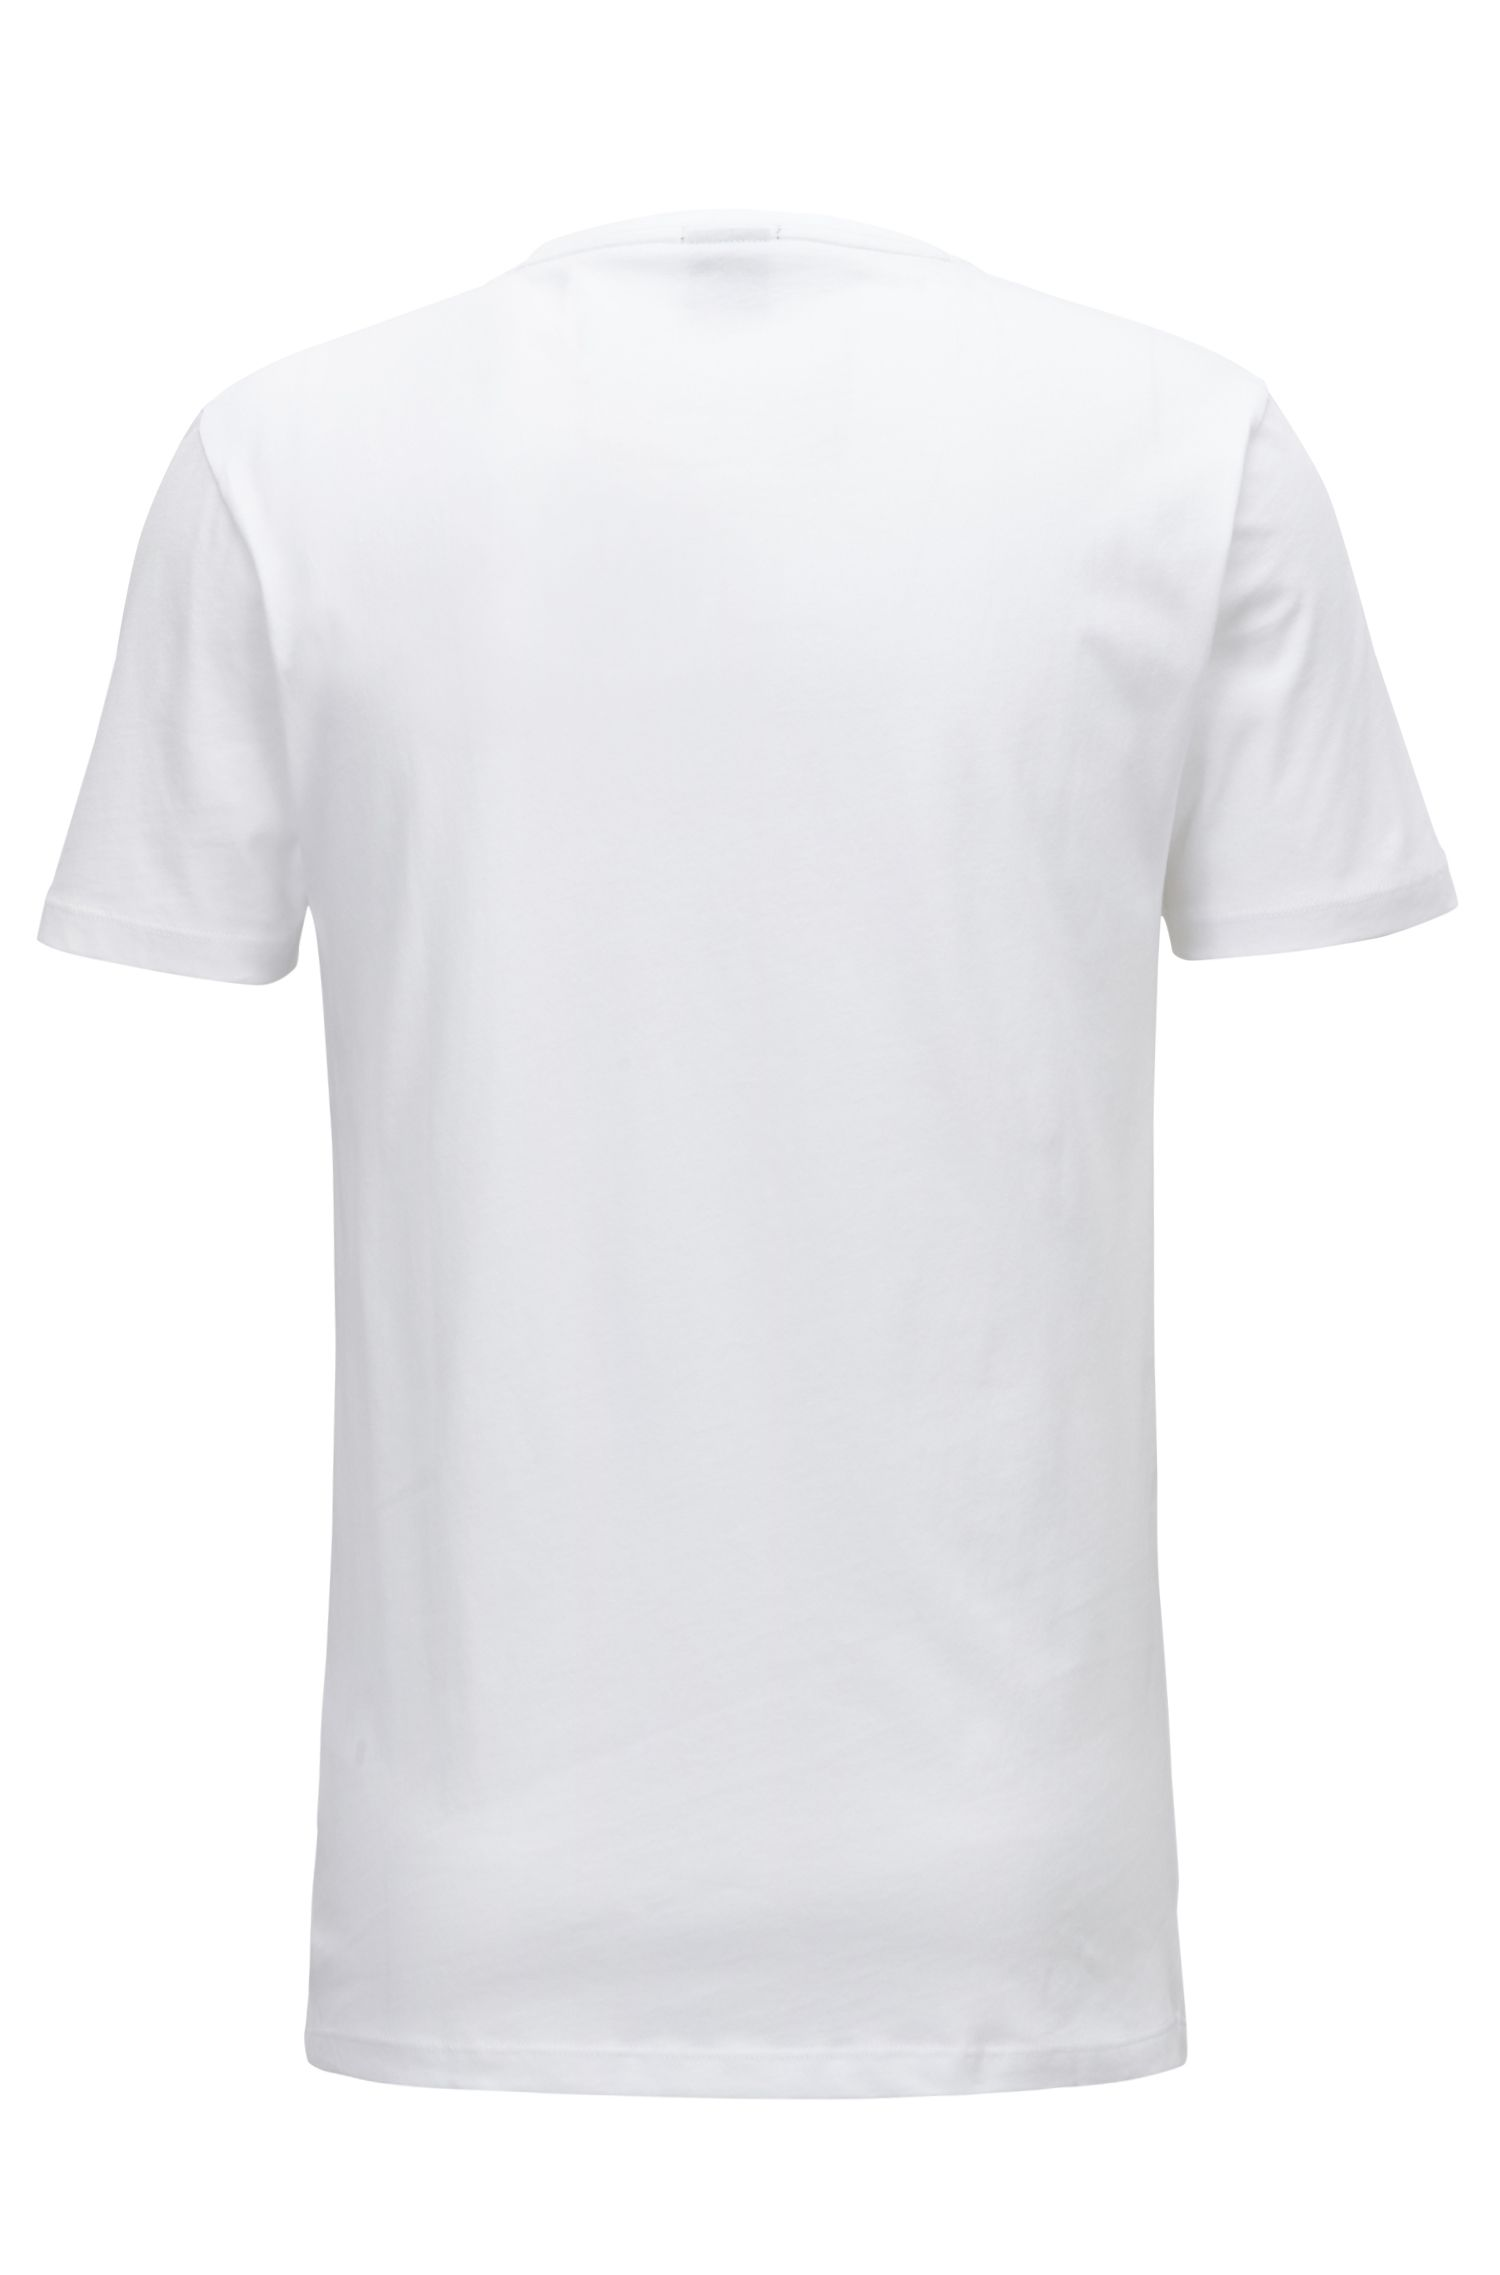 T-shirt imprimé Slim Fit en jersey simple de coton